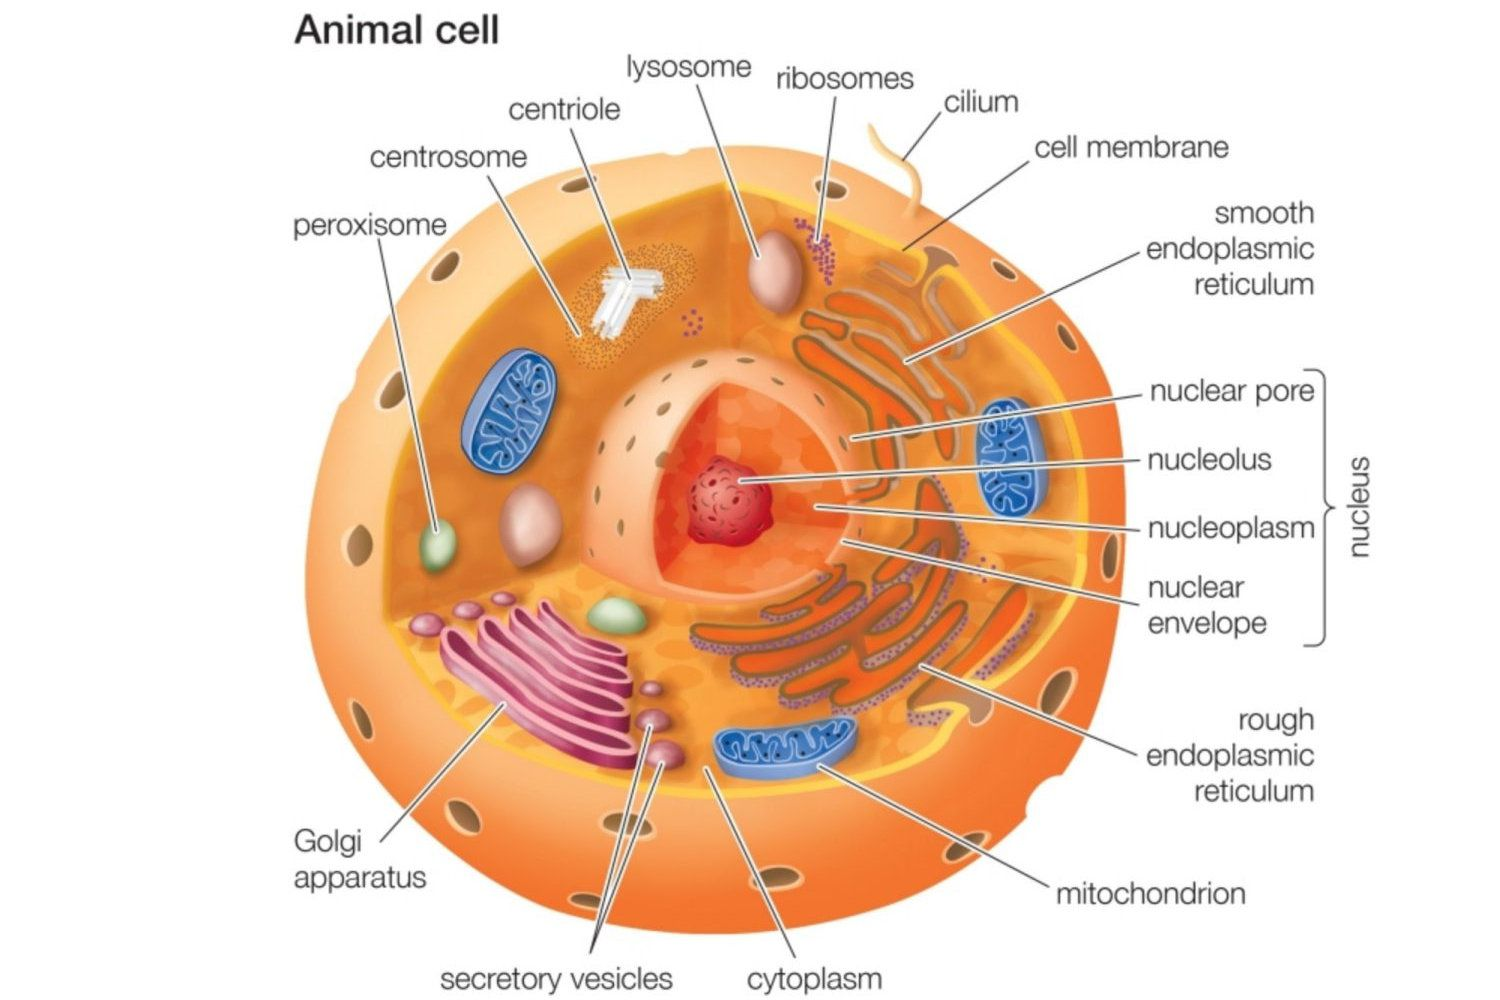 animal cell blank diagram to fill in ruger pistol parts cells and the membrane bound nucleus vs plant